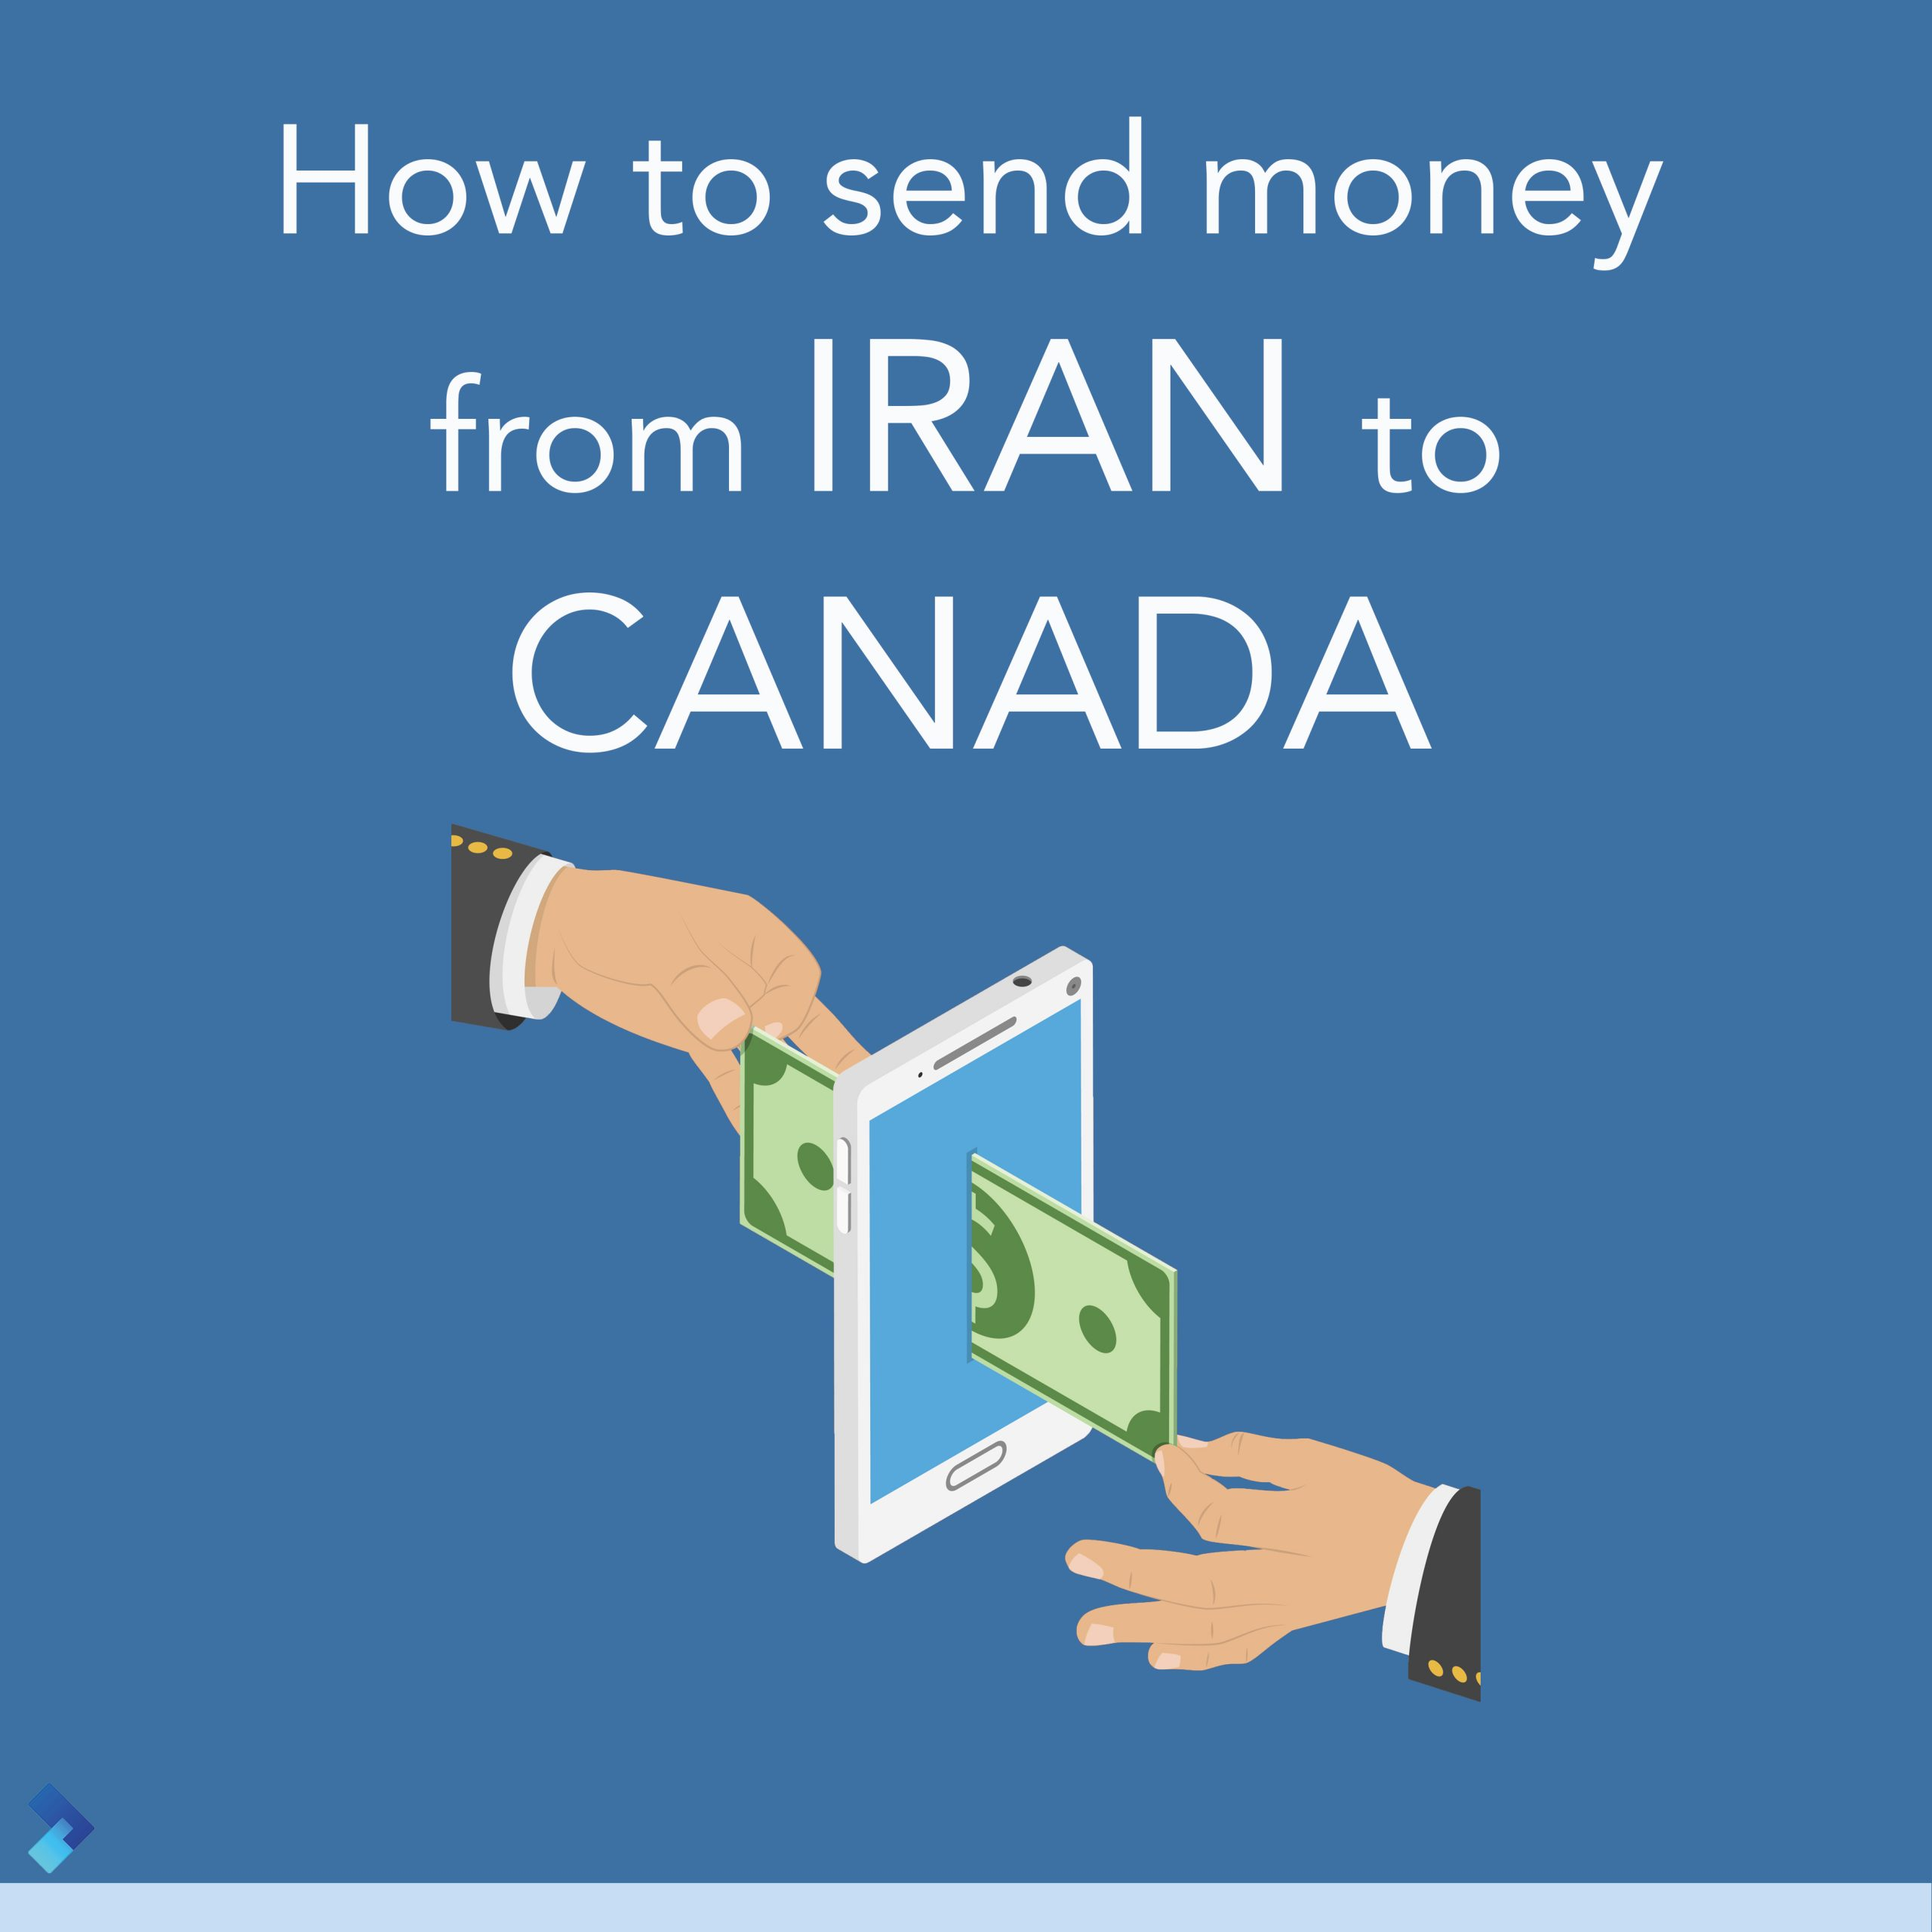 HOW TO SEND MONEY FROM IRAN TO CANADA?